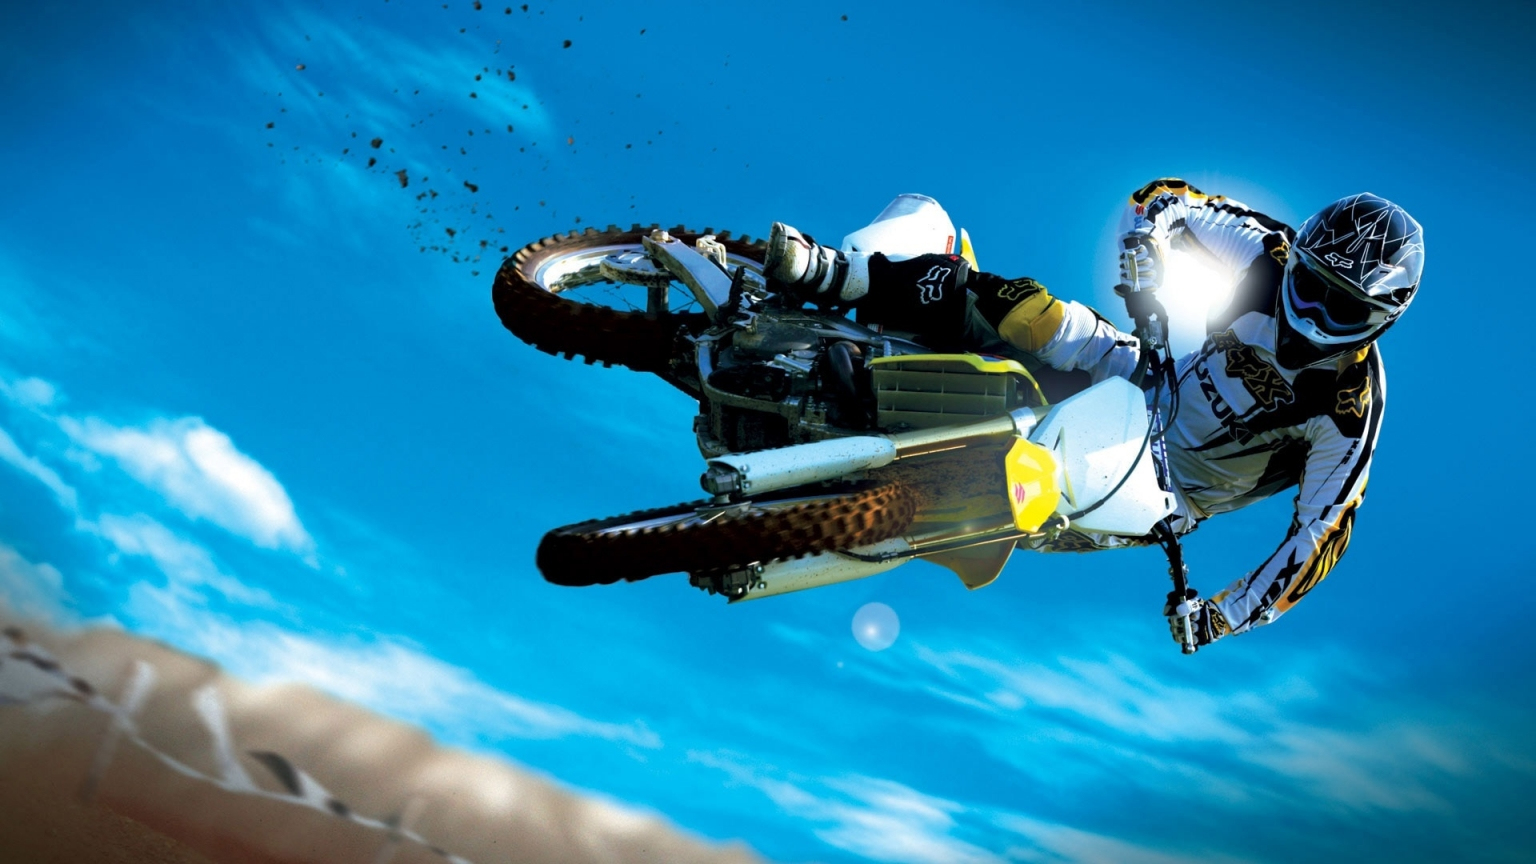 Moto Extreme Sport for 1536 x 864 HDTV resolution